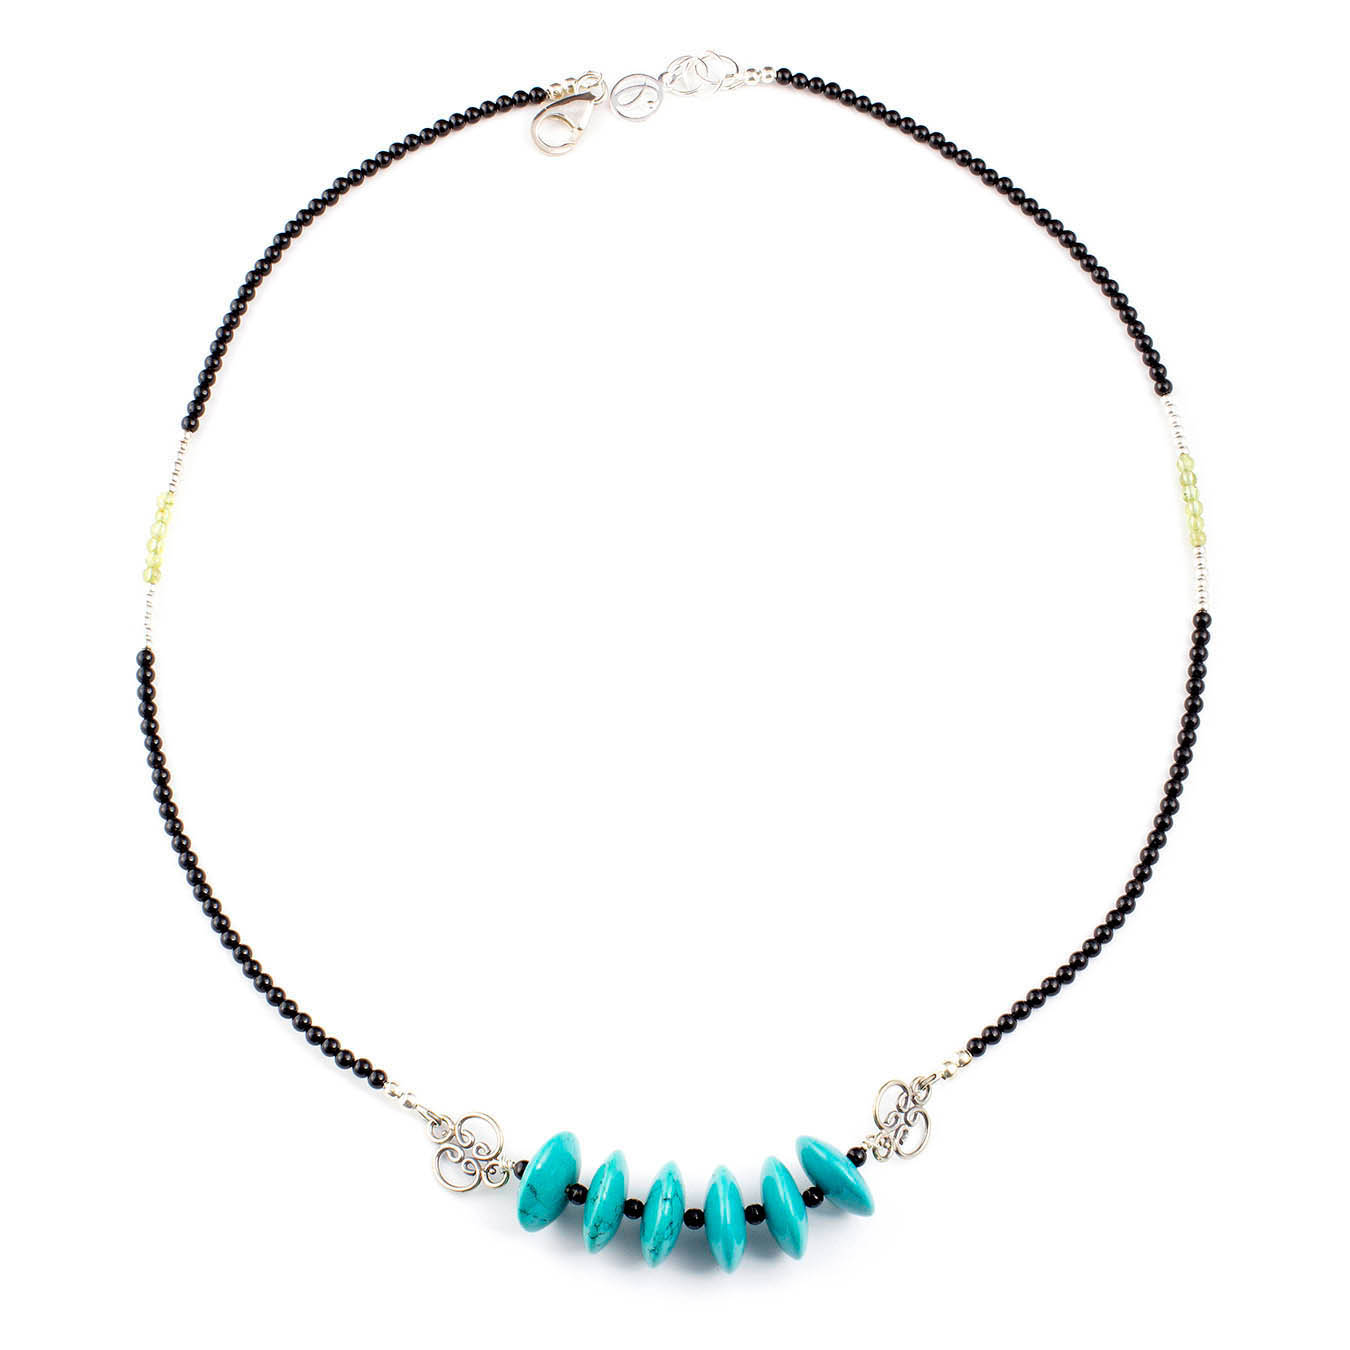 Handcrafted necklace made with turquoise, peridot, and bali silver